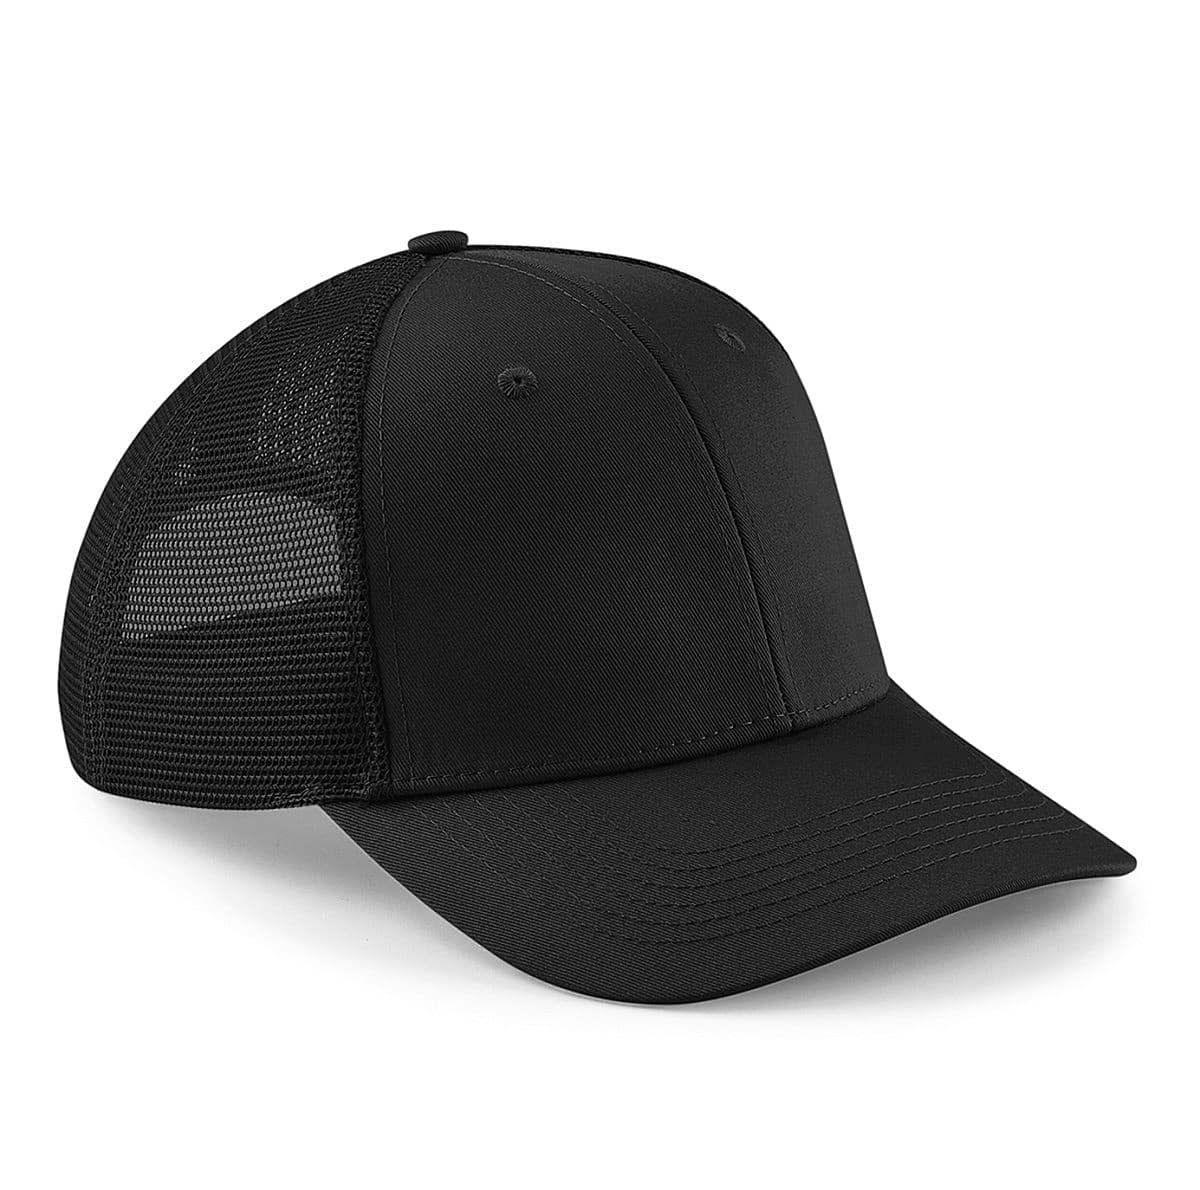 Beechfield Urbanwear Trucker Cap in Black (Product Code: B646)